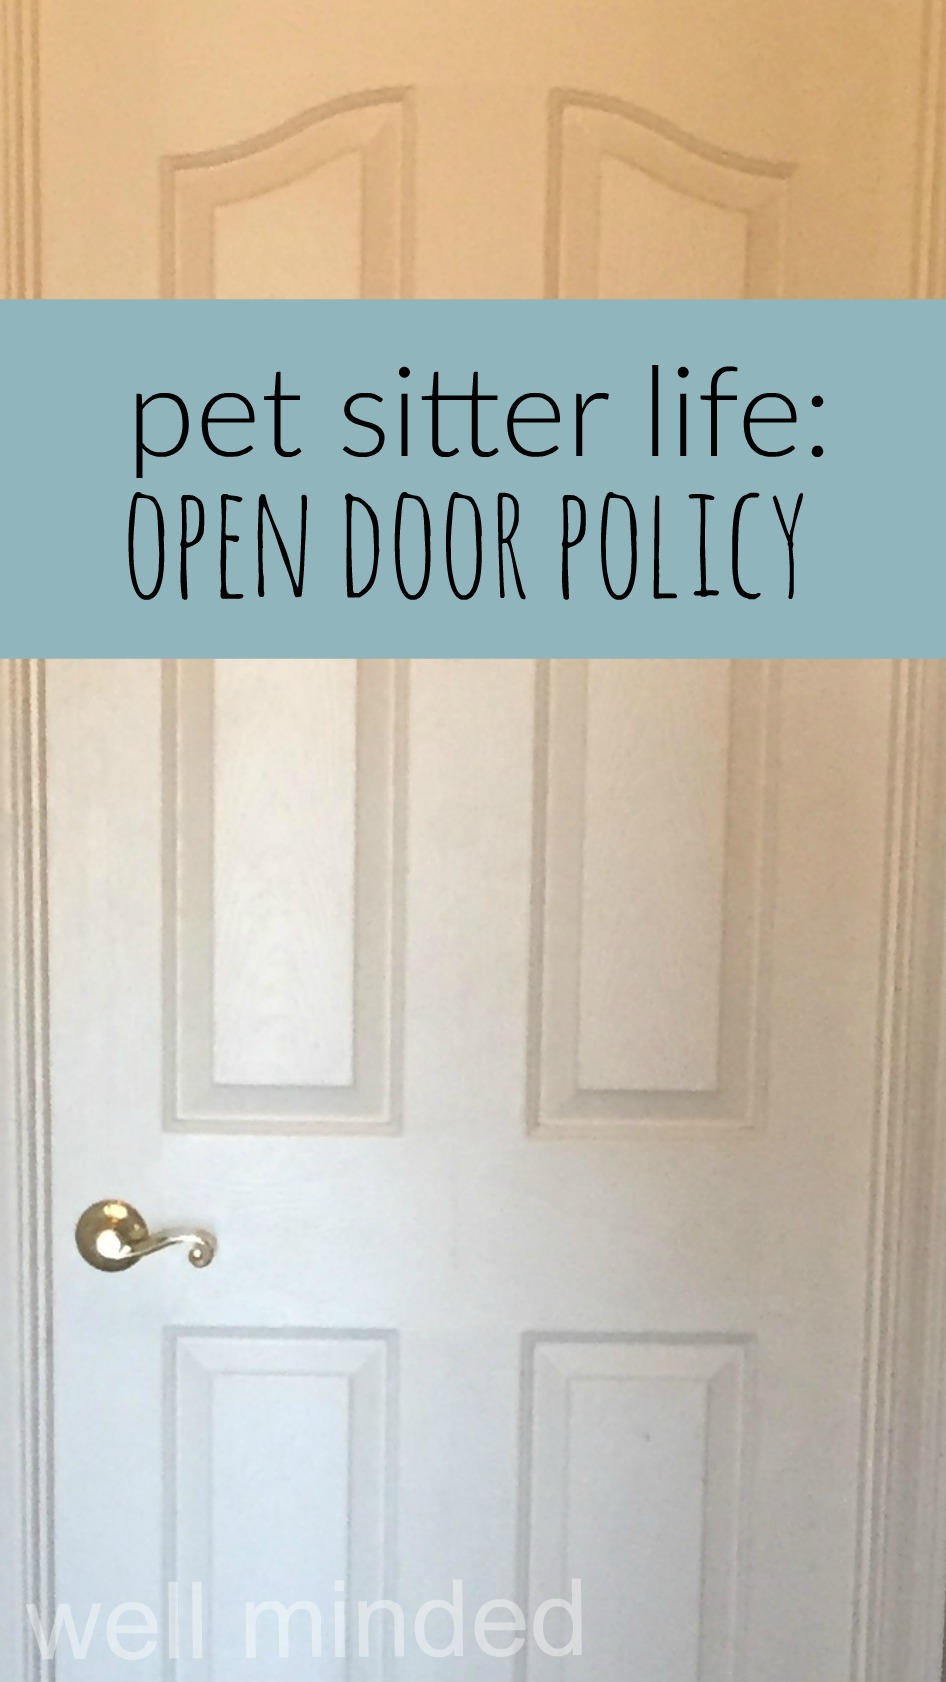 Pet Sitter Life: Open Door Policy–wellmindedpets.com